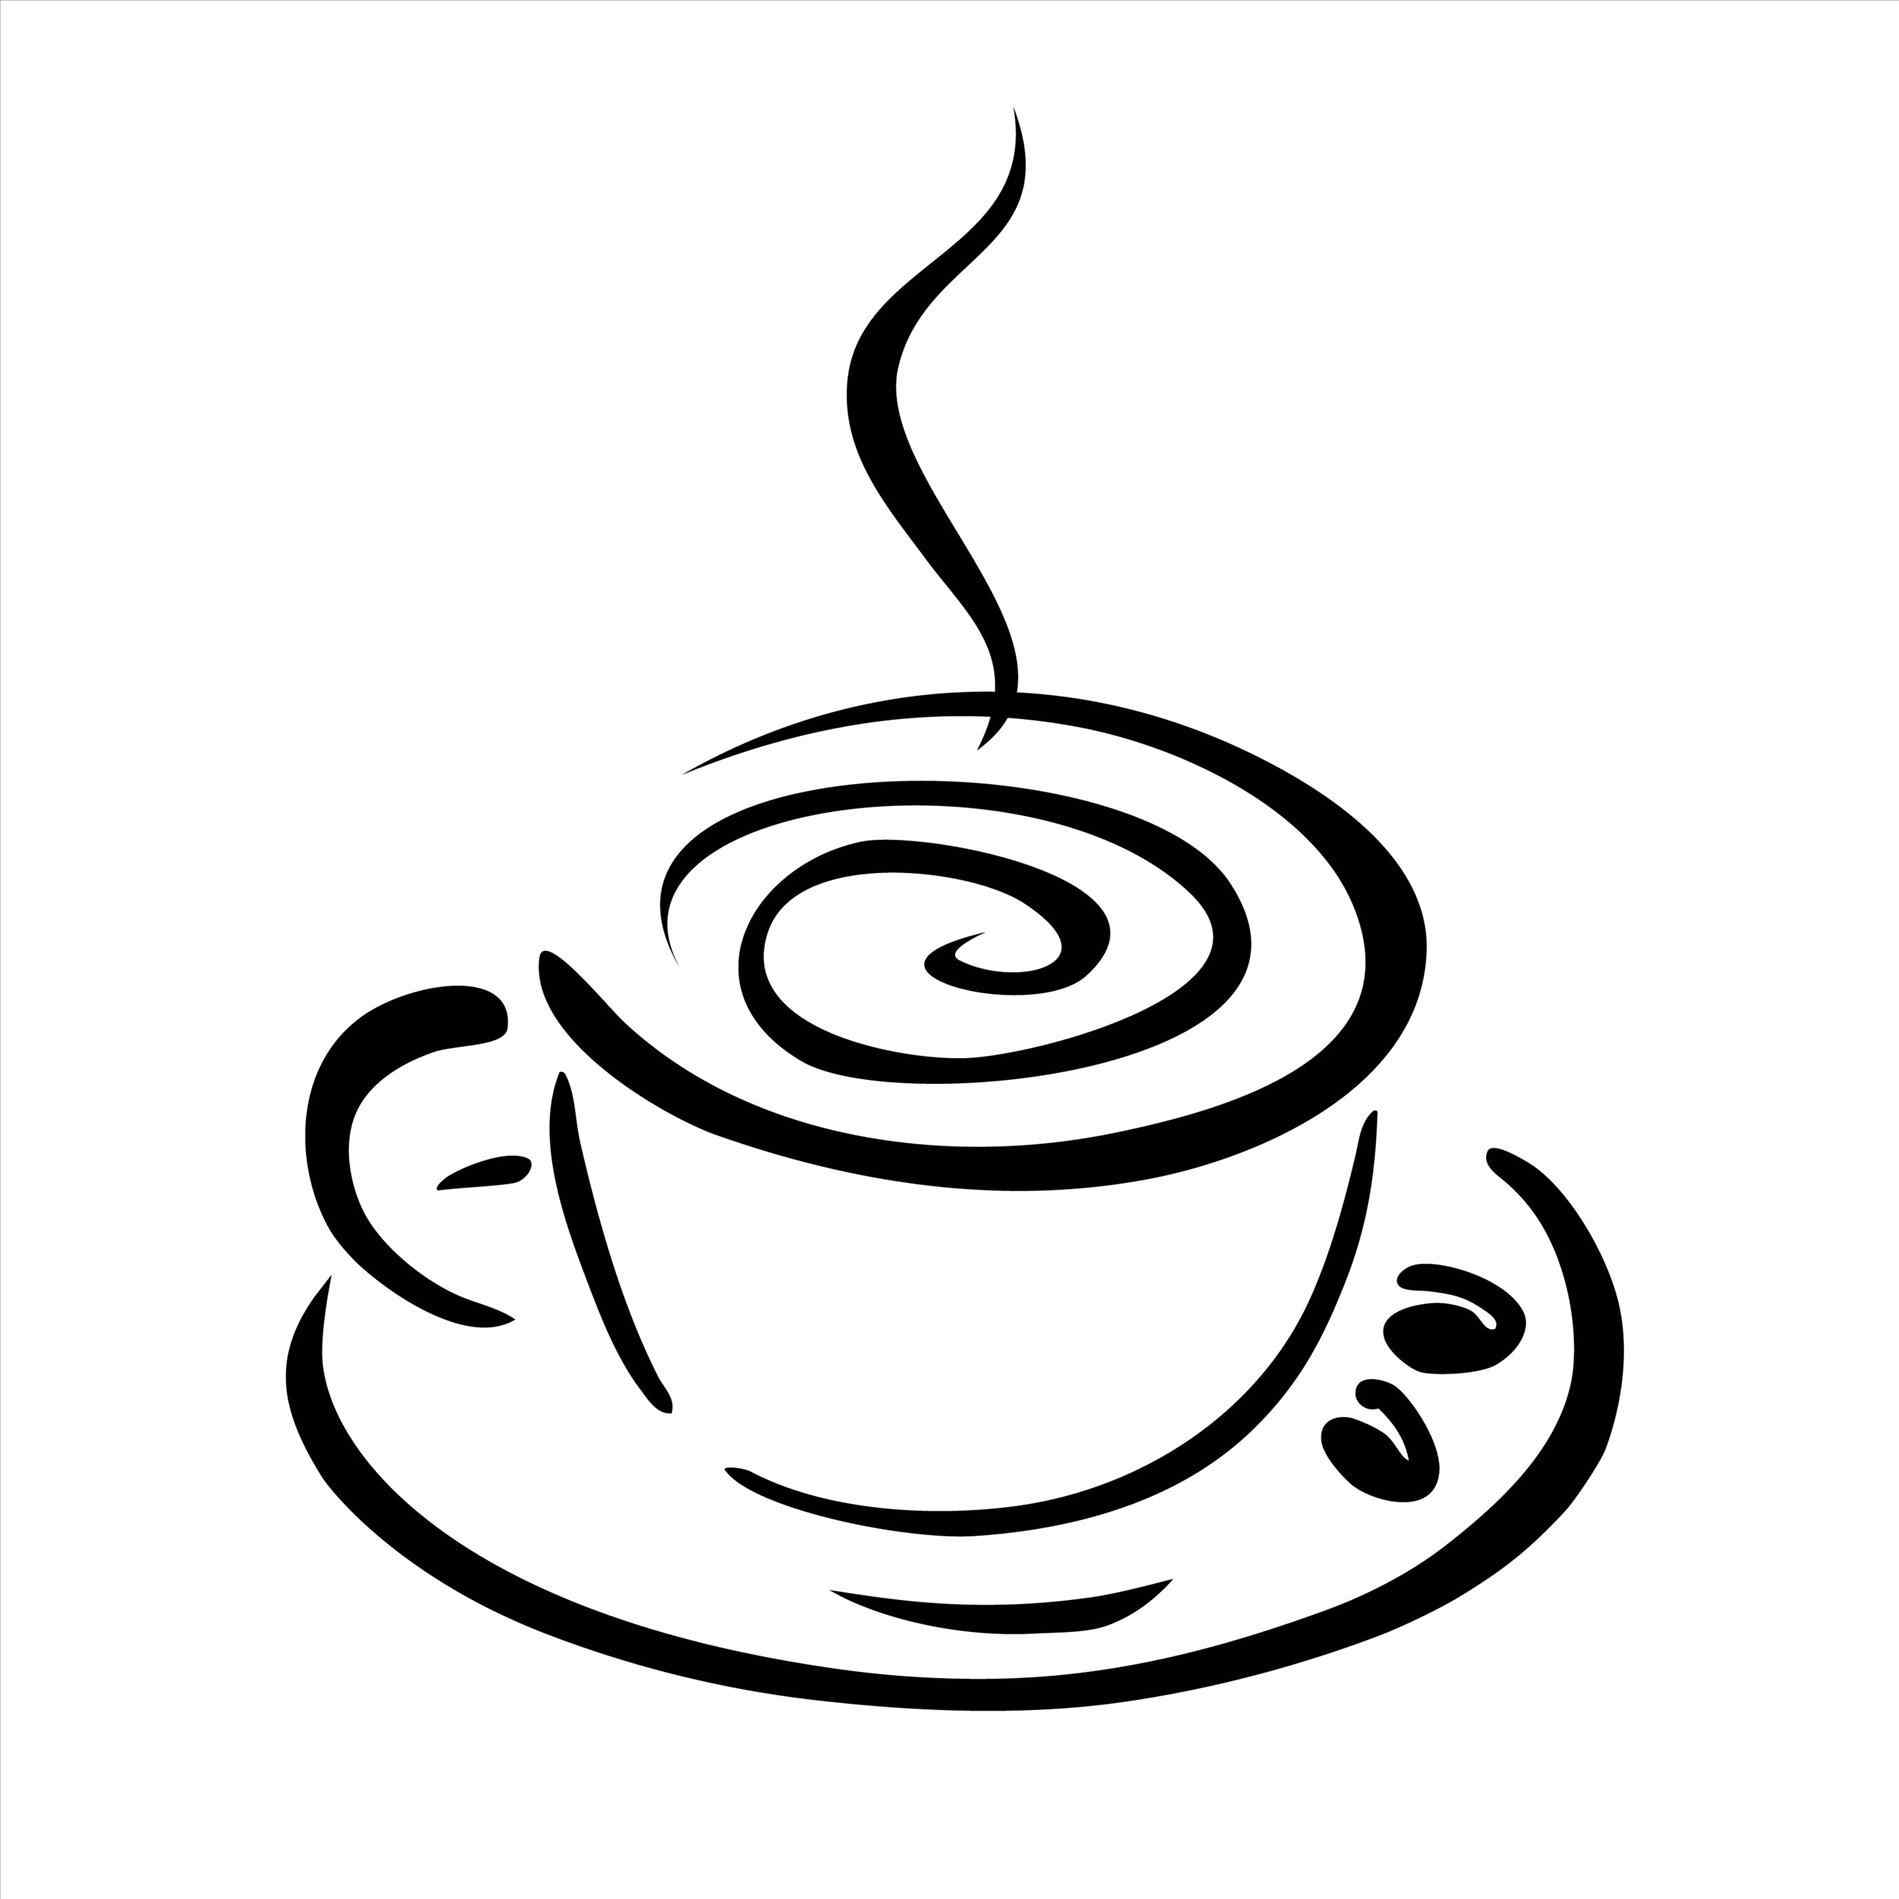 coffee cup drawing free at getdrawings com free for personal use rh getdrawings com free clipart coffee cup starbucks free clip art coffee cup images